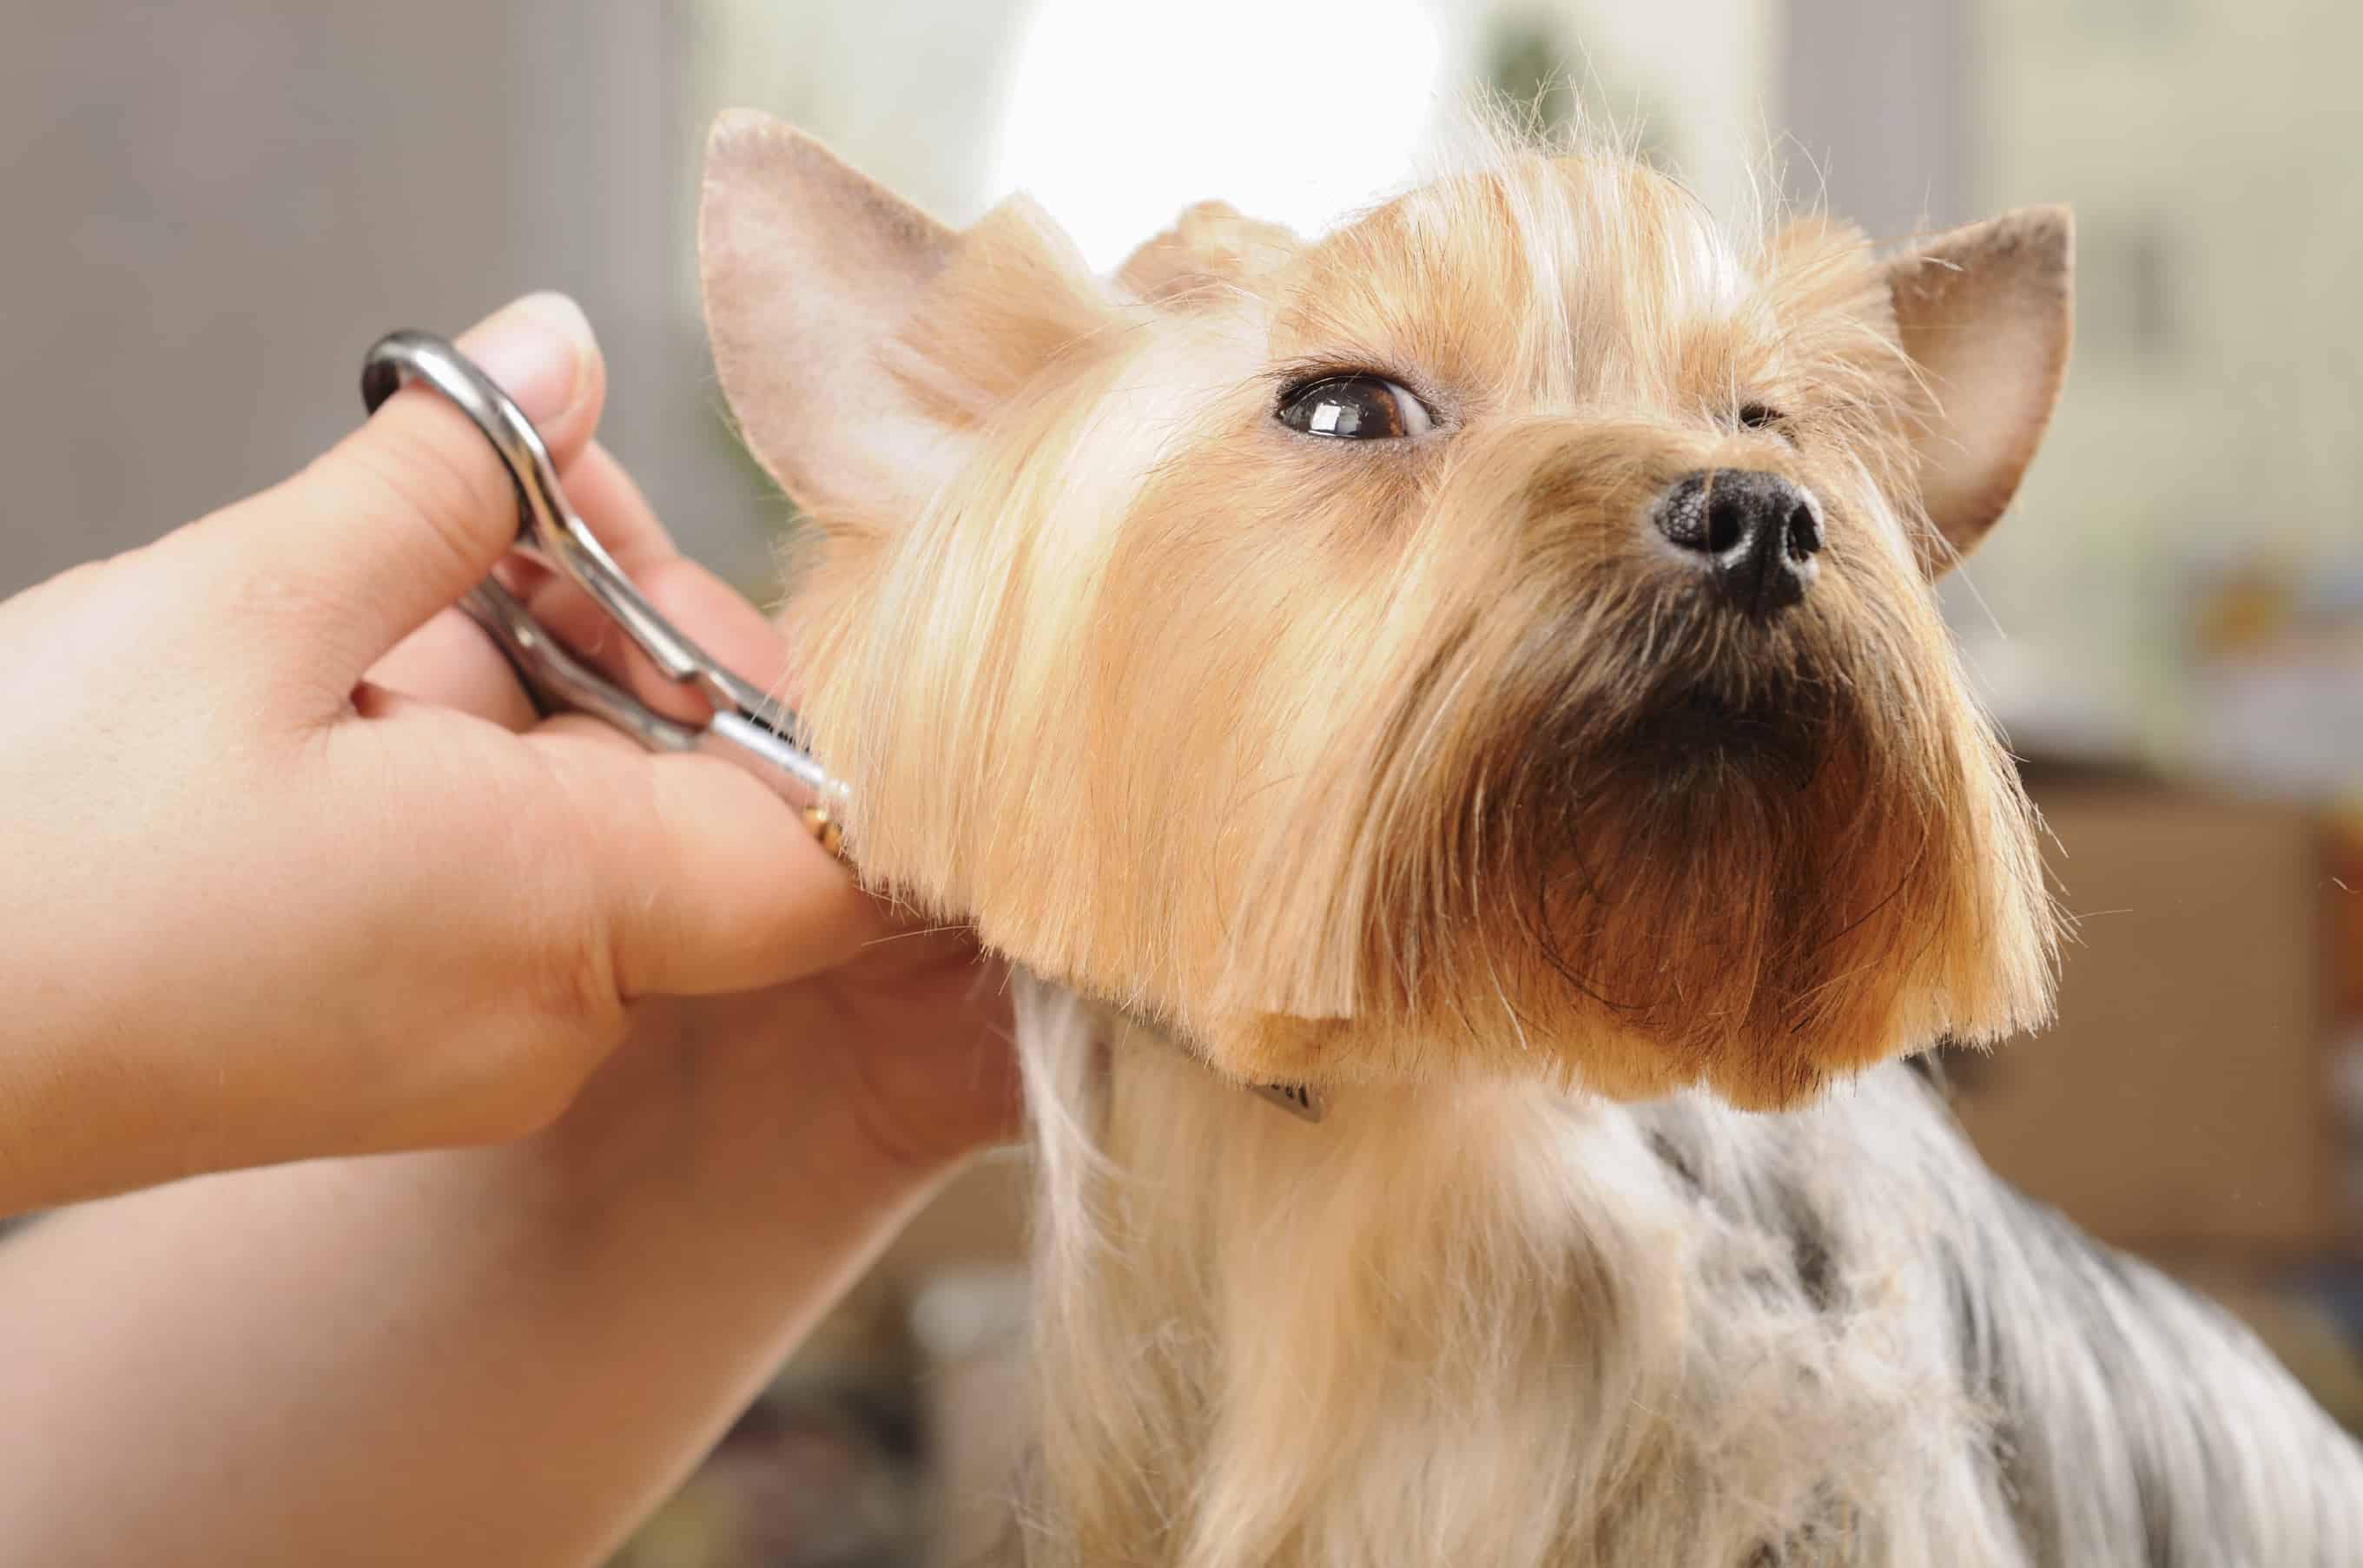 Tips to groom your dog properly